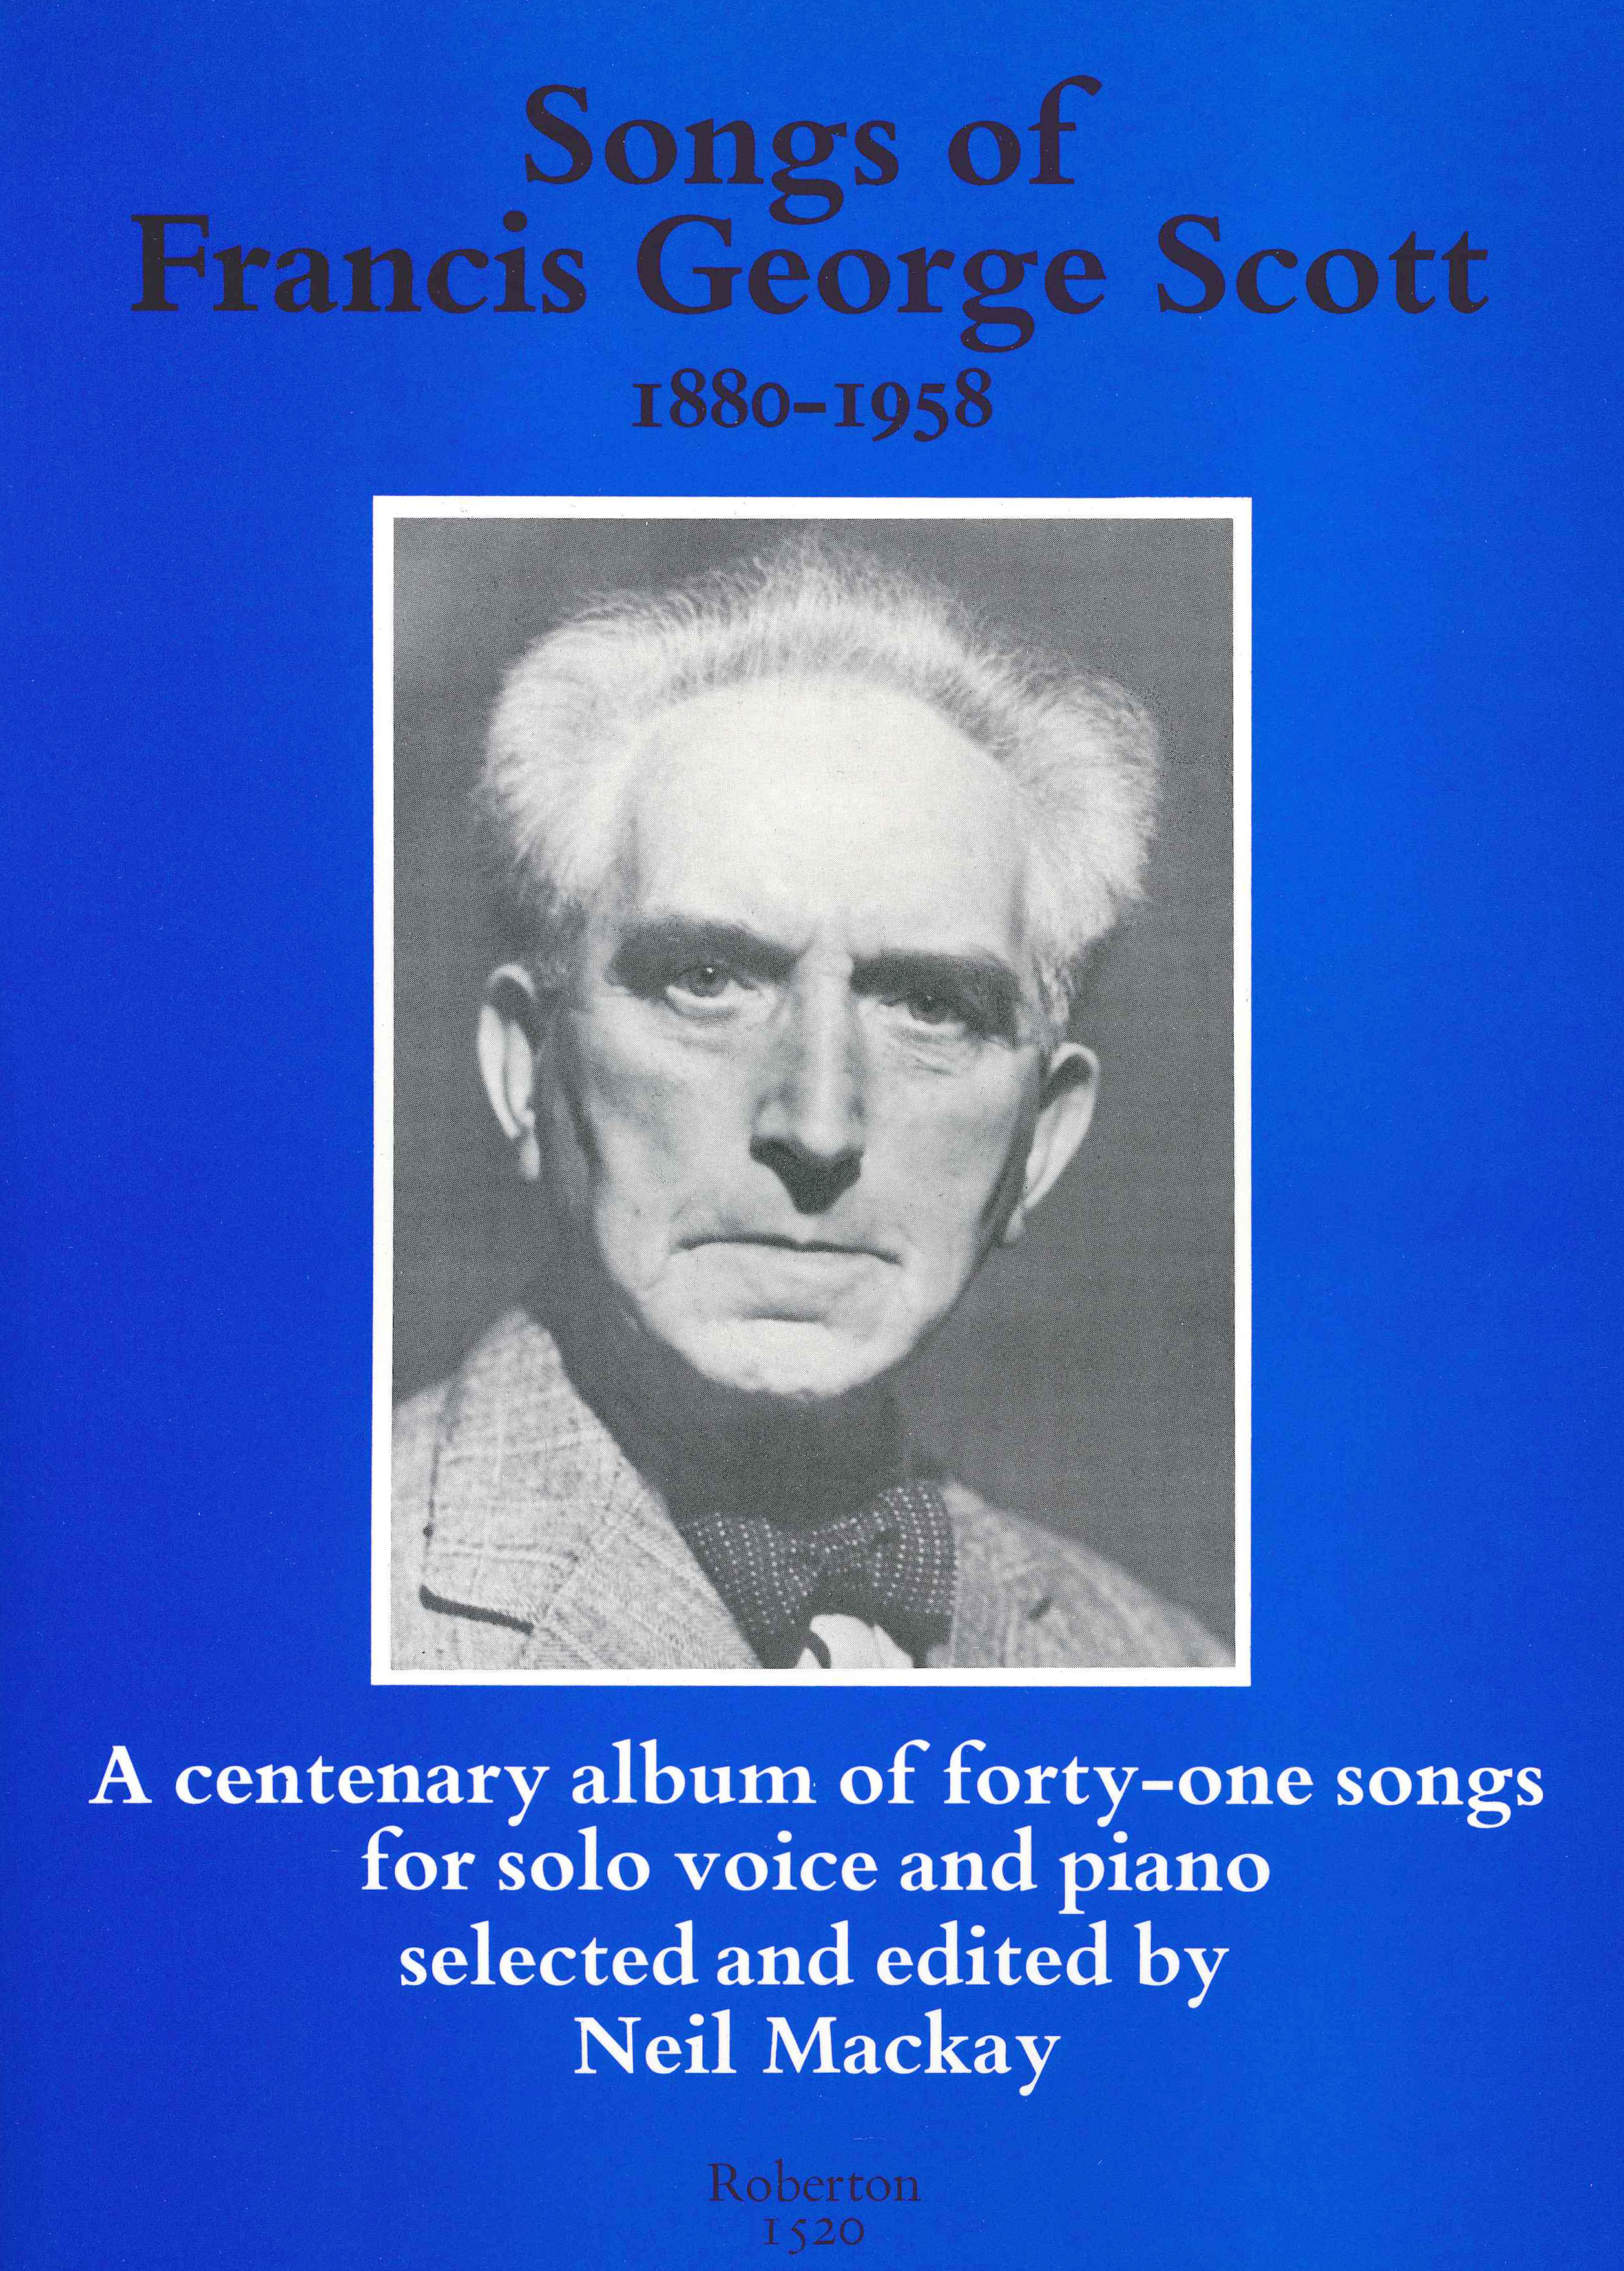 Songs of Francis George Scott image